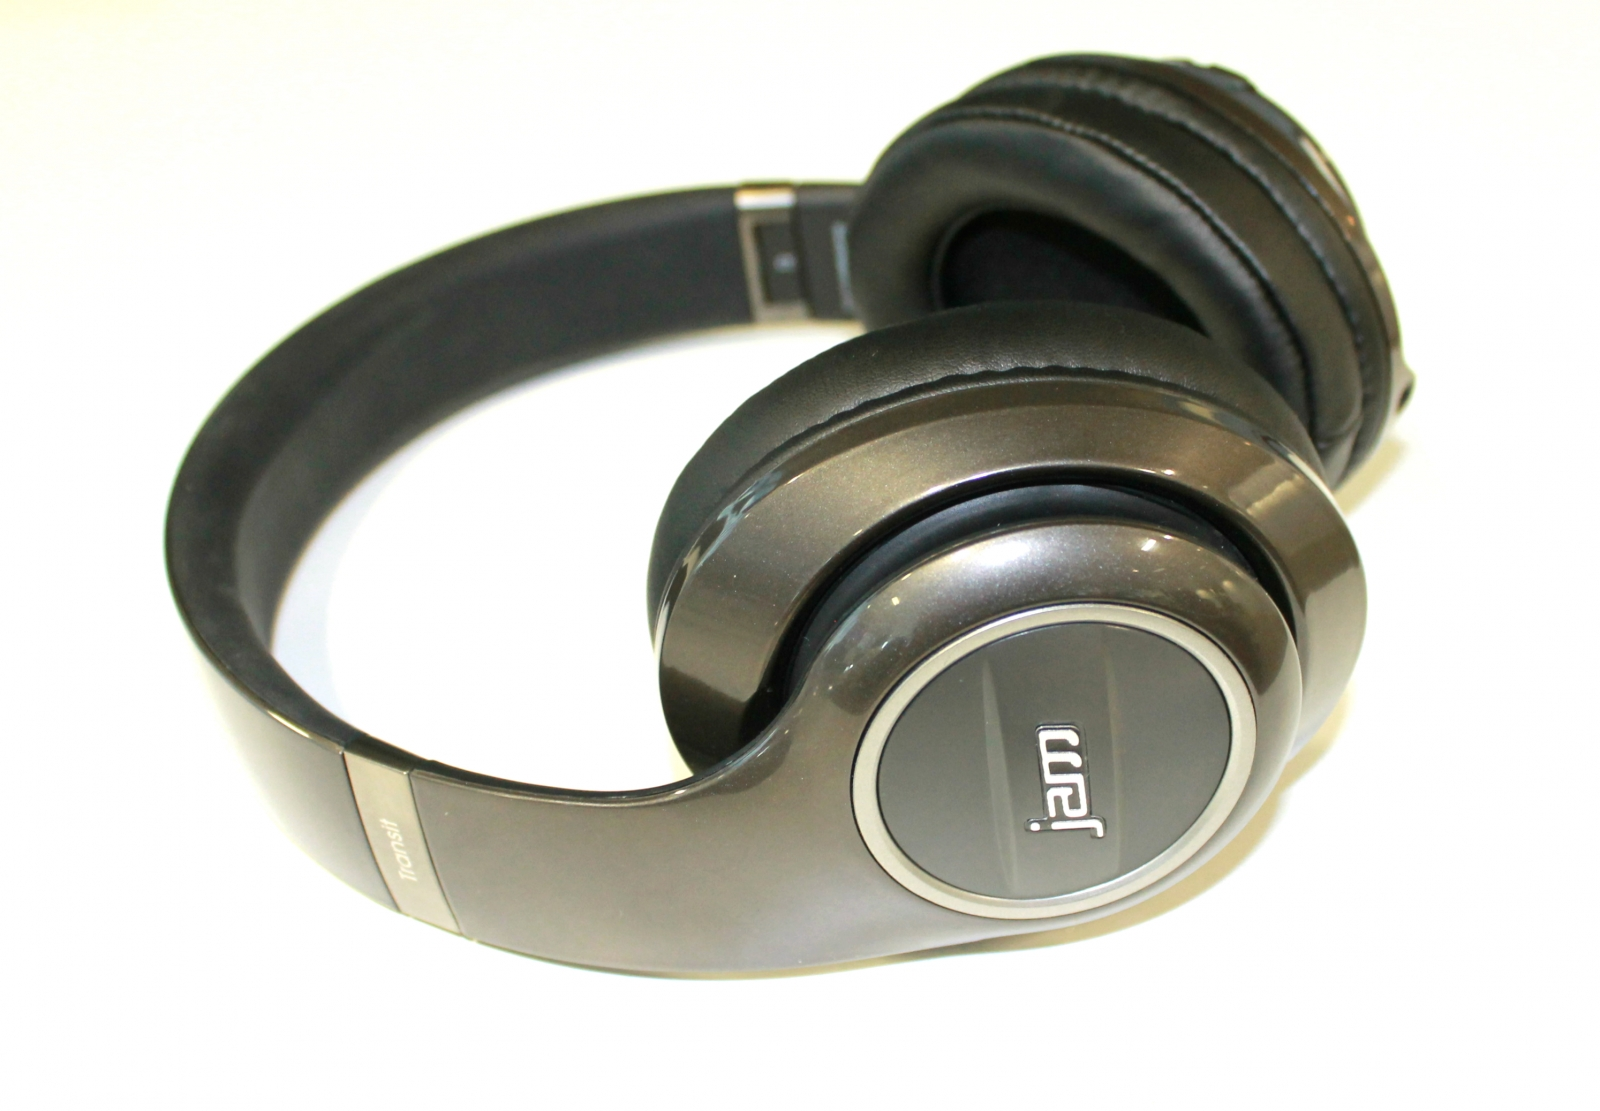 Jam transit bluetooth wireless headphones